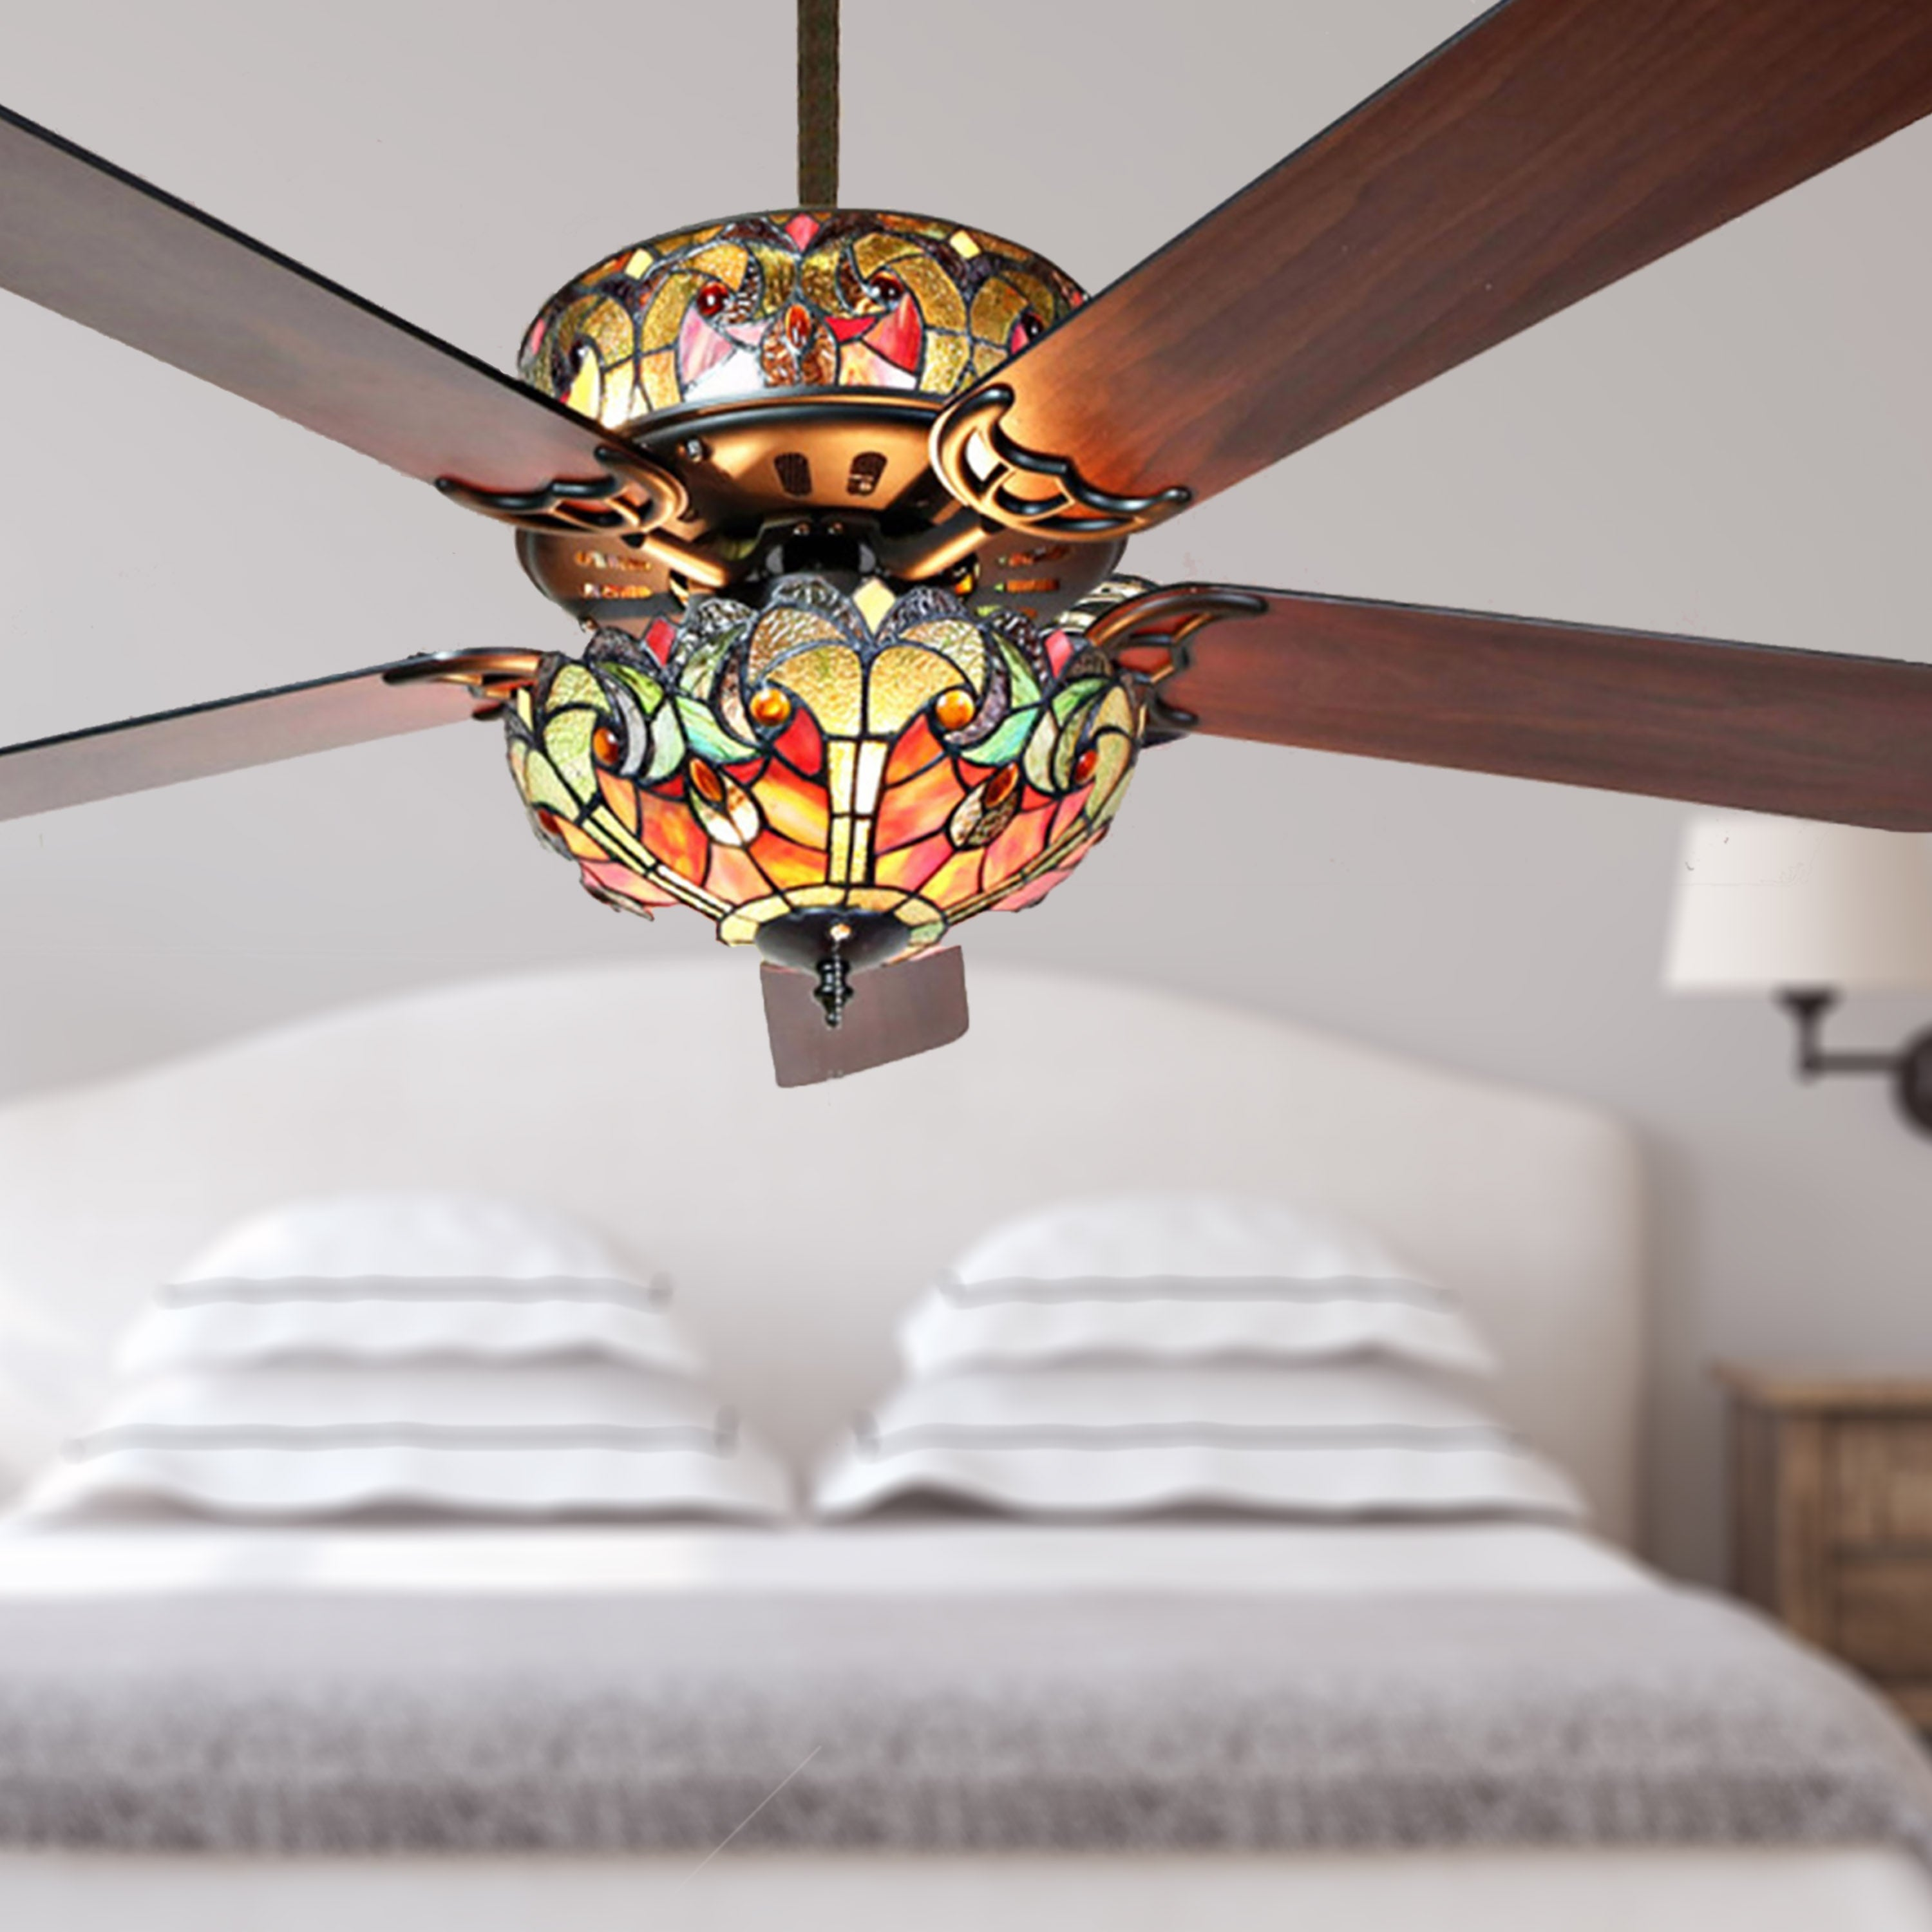 Tiffany Style Stained Glass Halston Ceiling Fan Spice 52 L X 52 W X 19 H 52 L X 52 W X 19 H On Sale Overstock 16105878 Pull Chain